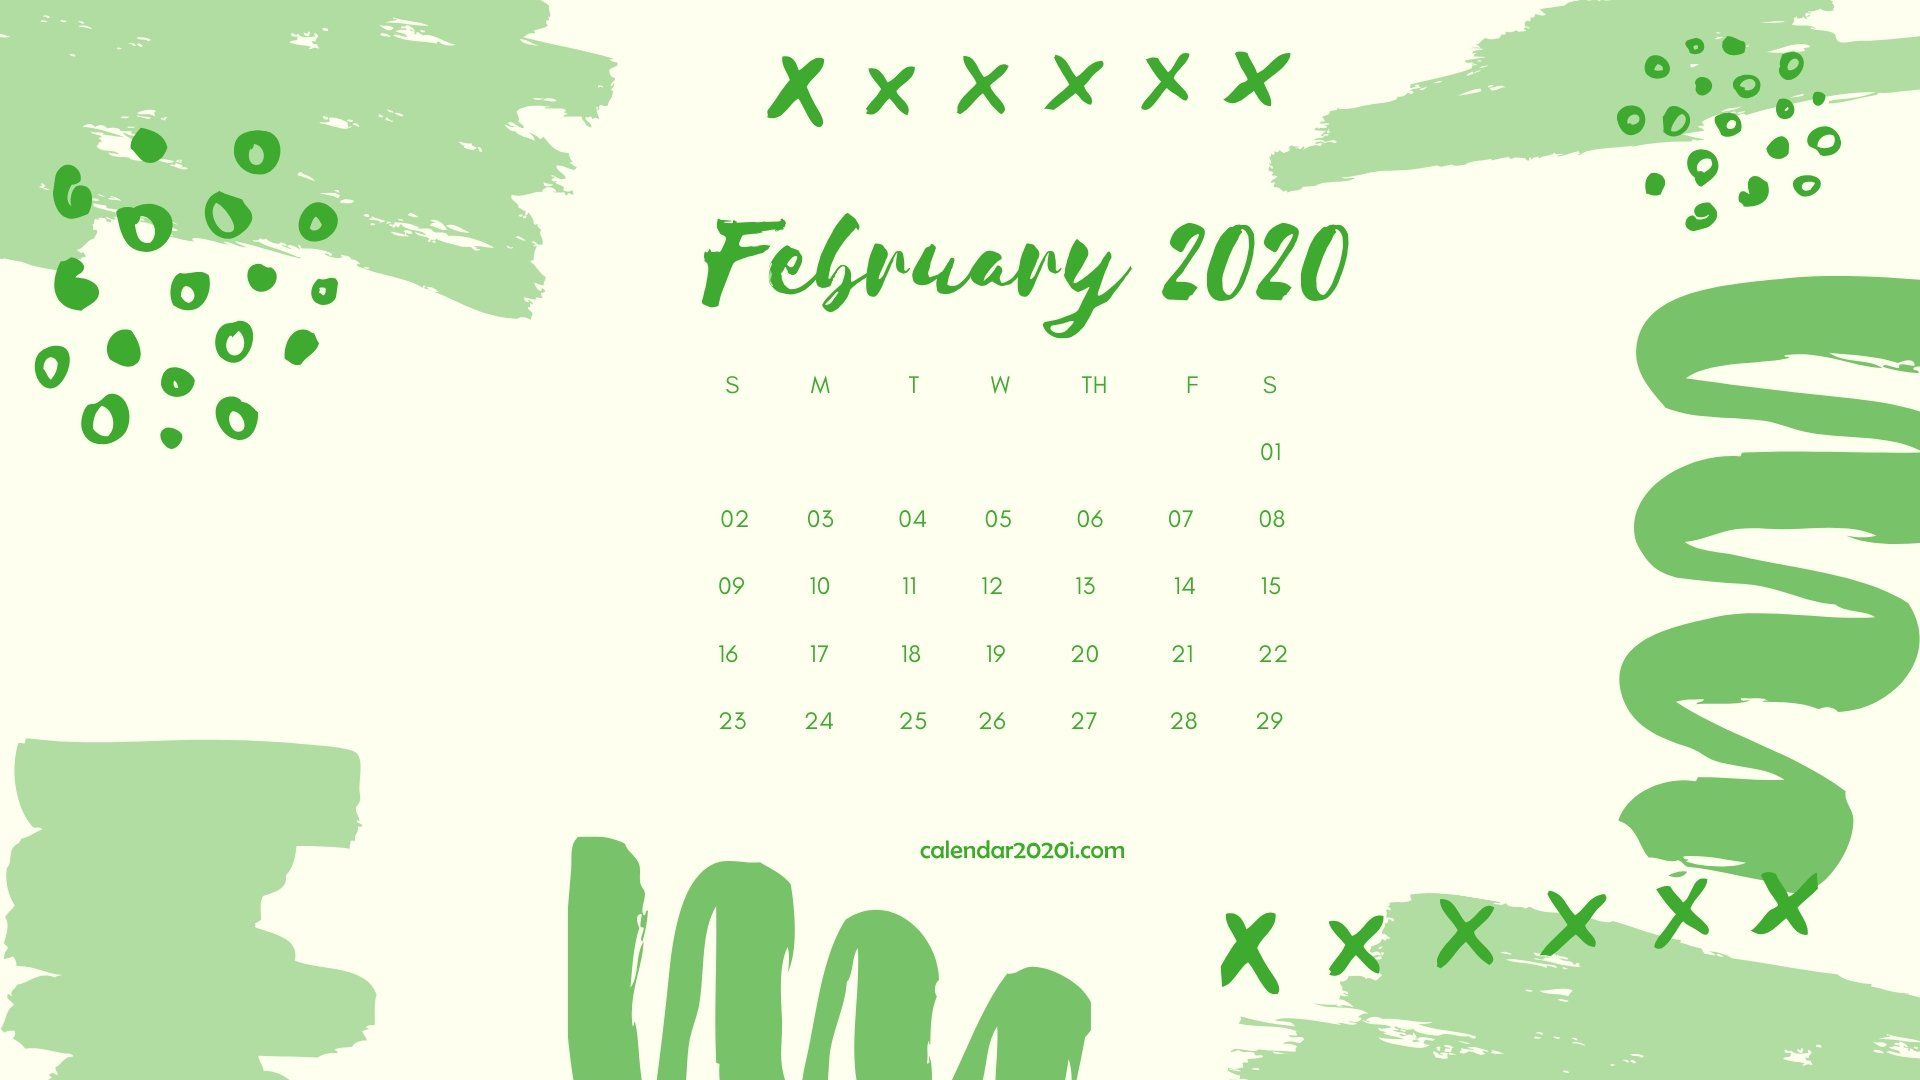 February 2020 Calendar Desktop Wallpaper Calendar